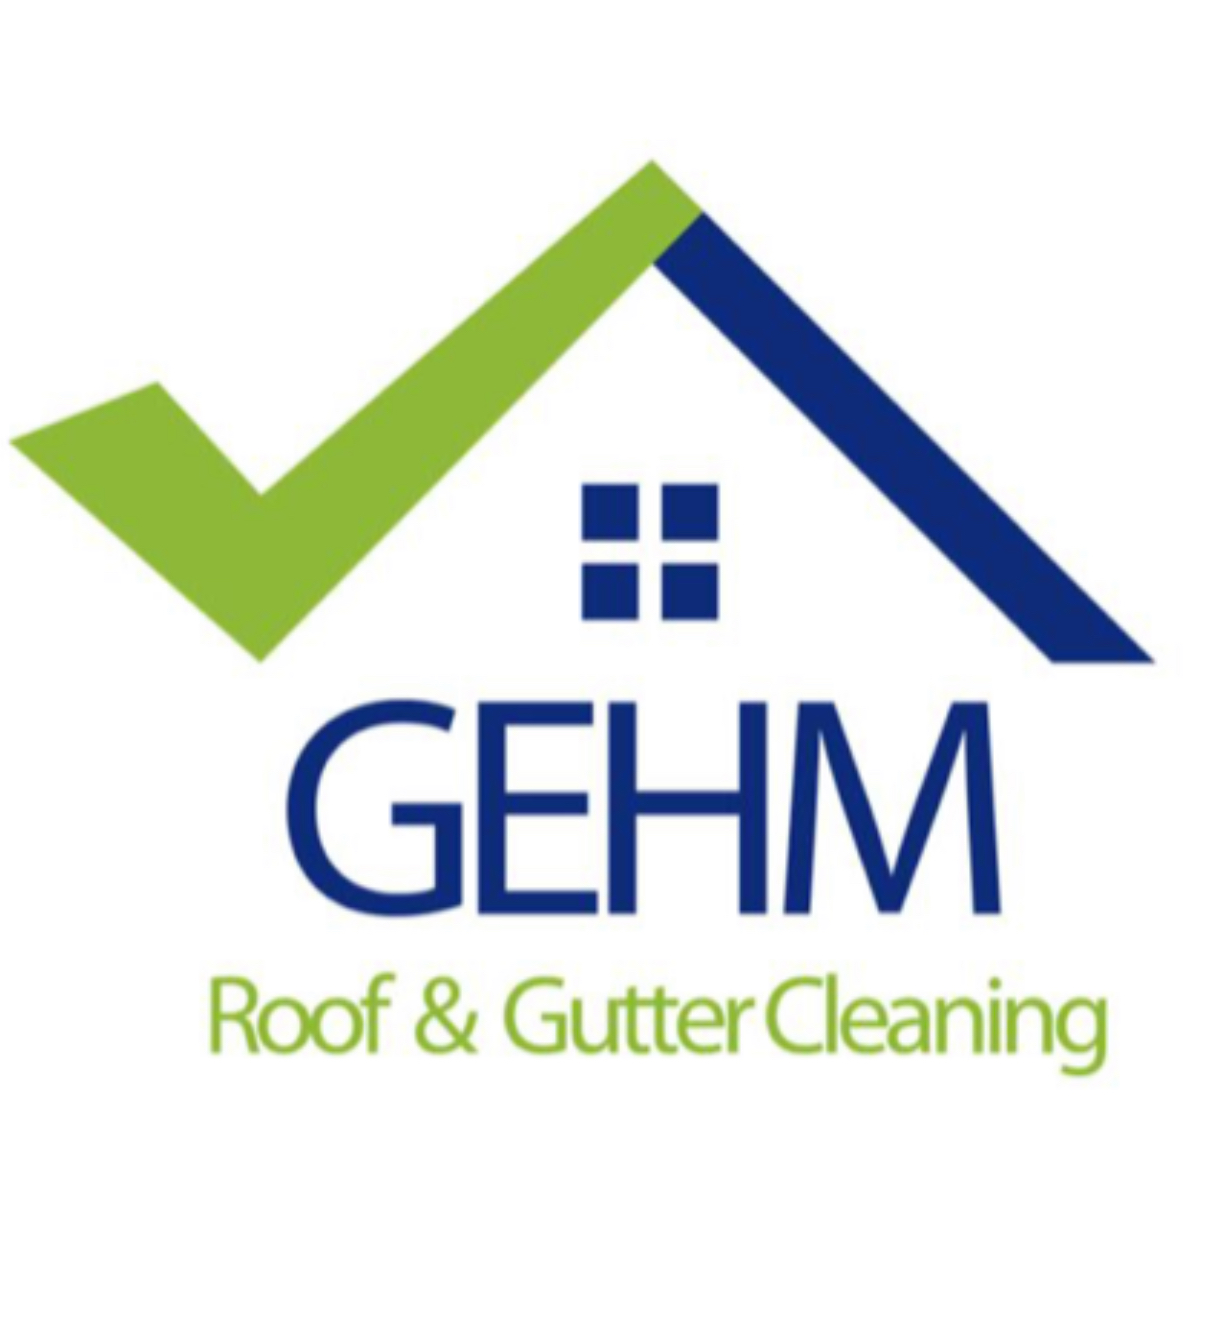 GEHM Roof & Gutter Cleaning